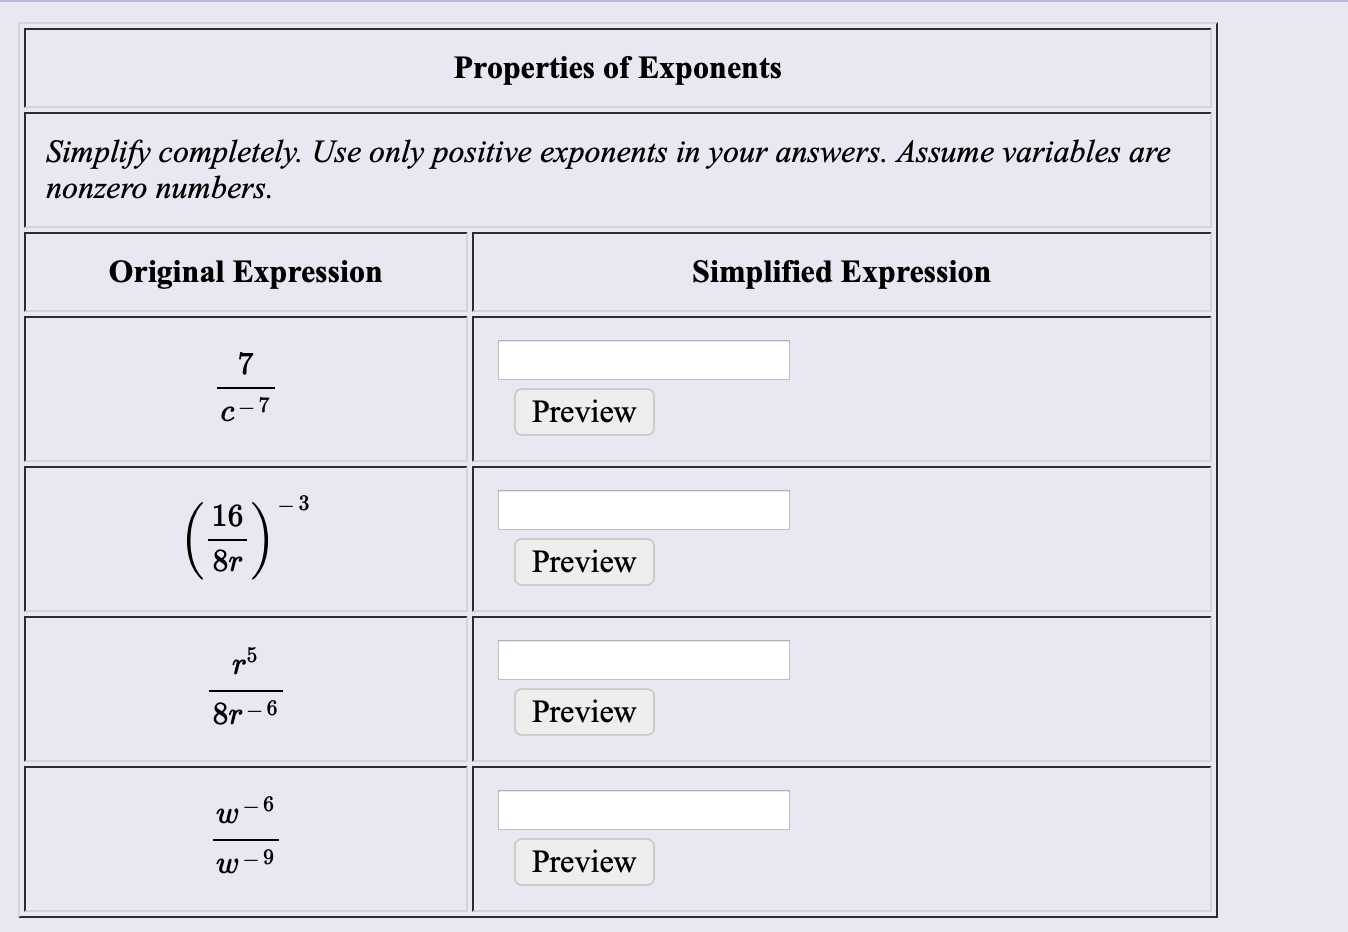 Properties of Exponents Simplify completely. Use only positive exponents in your answers. Assume variables are поnzero numbers. Simplified Expression Original Expression 7 Preview c-7 -3 16 8r Preview Preview 8r-6 w Preview